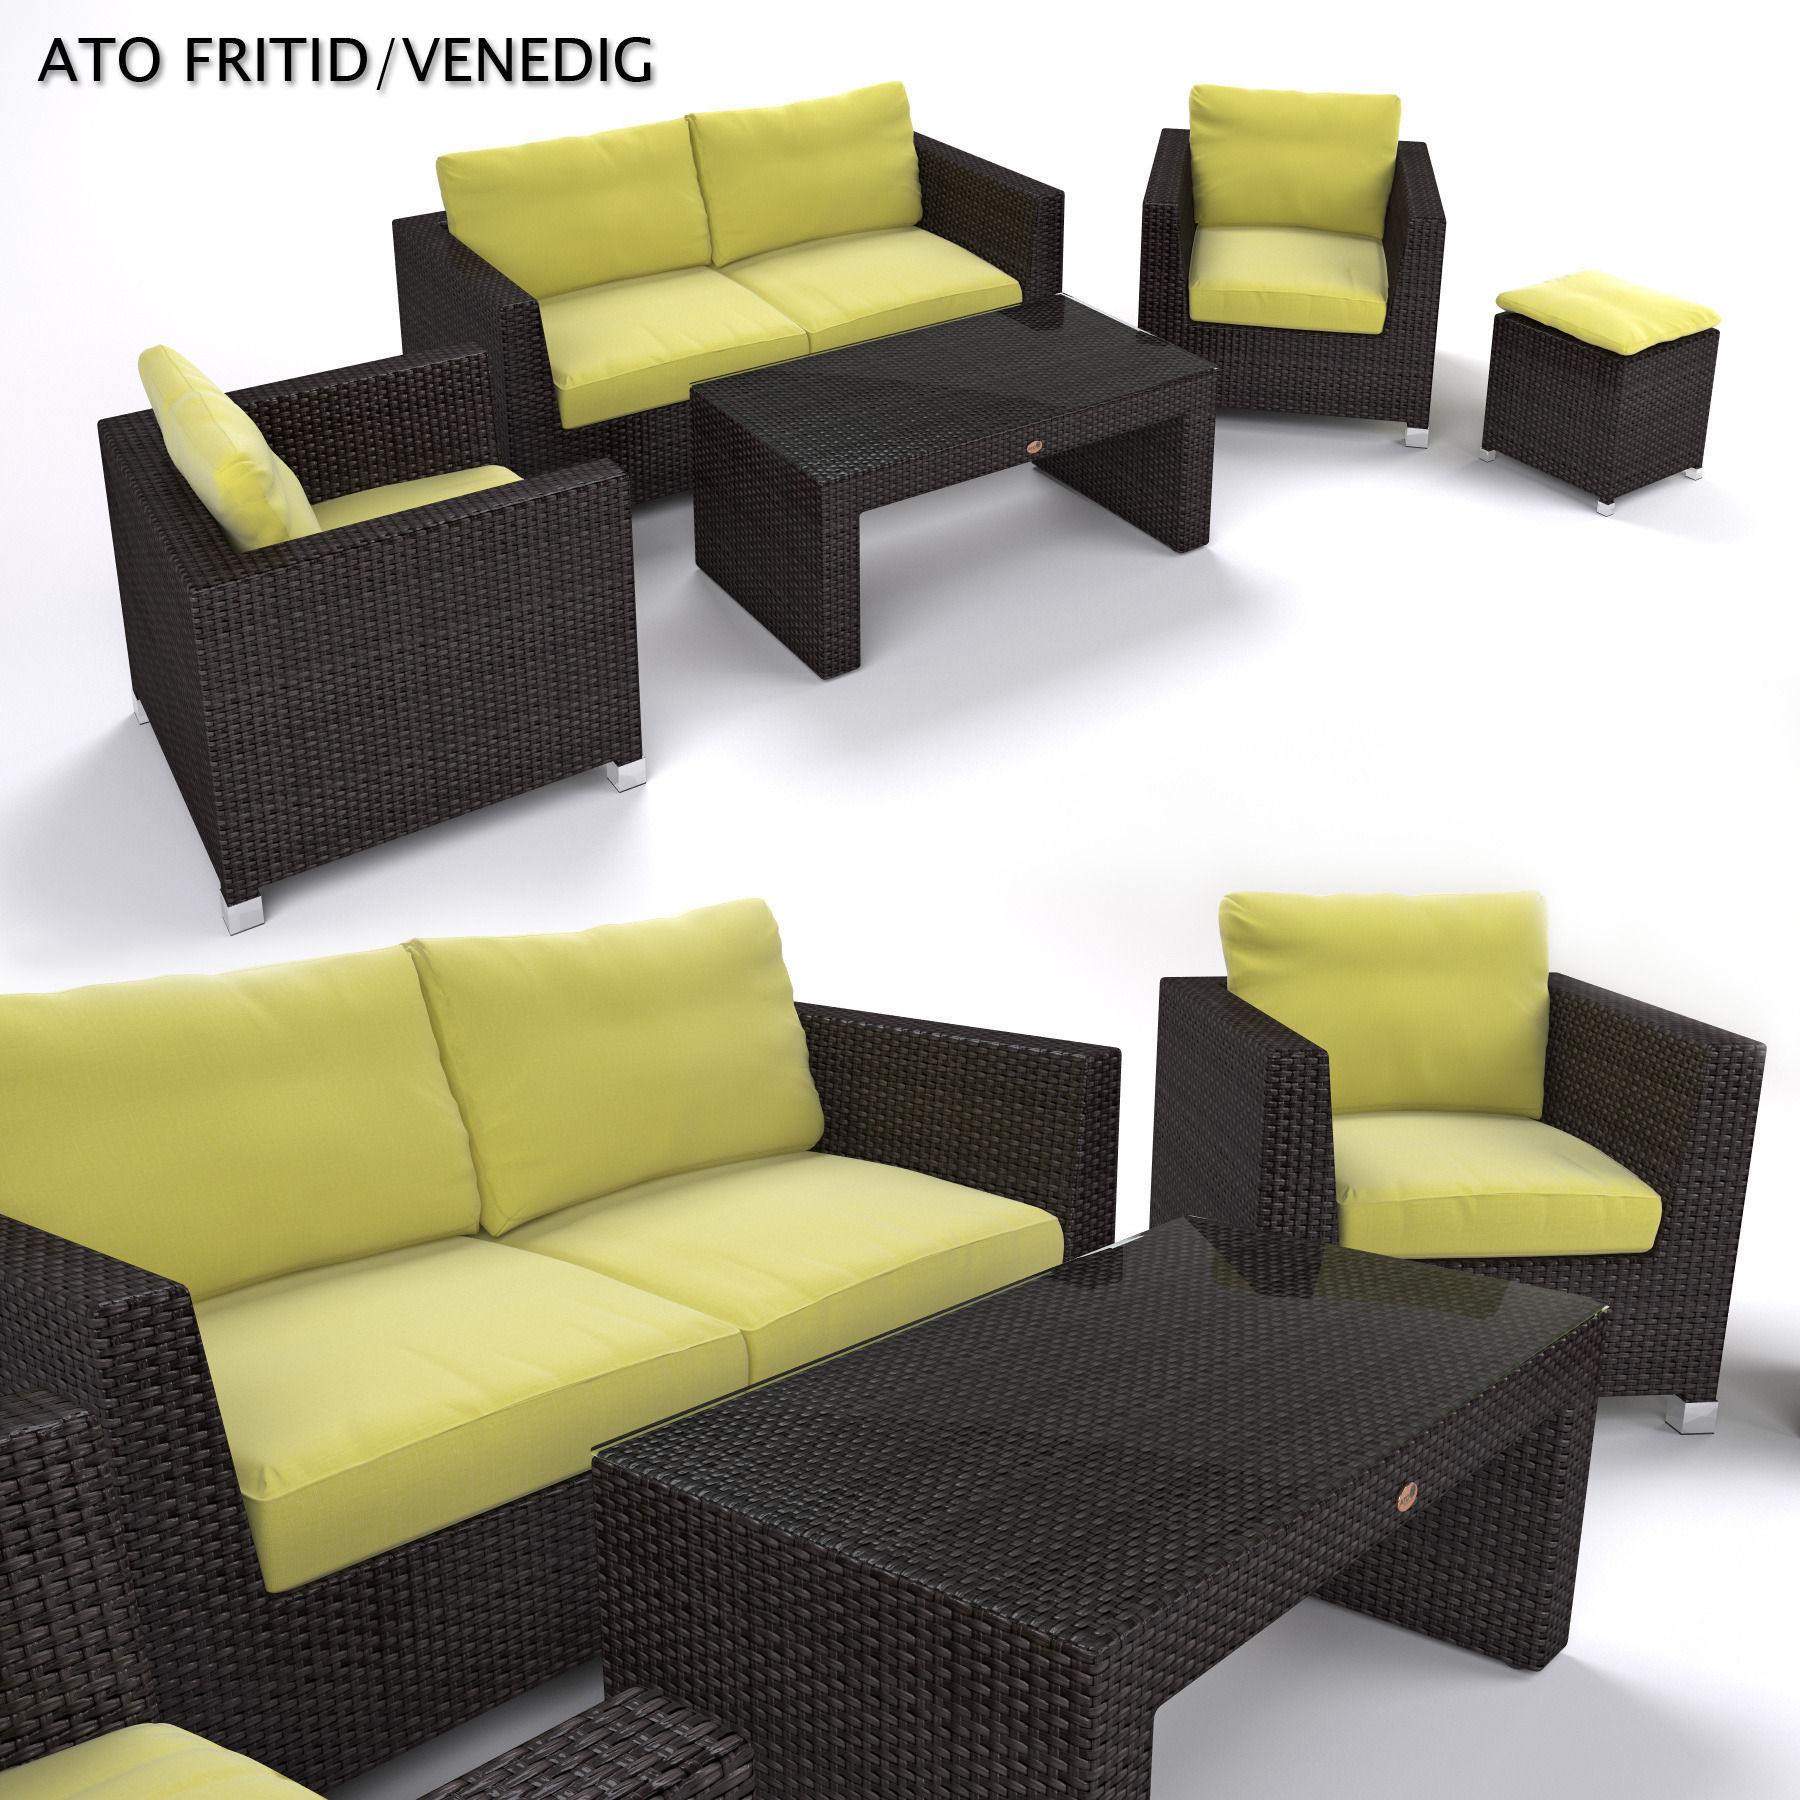 garden furniture synthetic rattan set ato venedig 3d model max obj fbx mtl 1 - Garden Furniture 3d